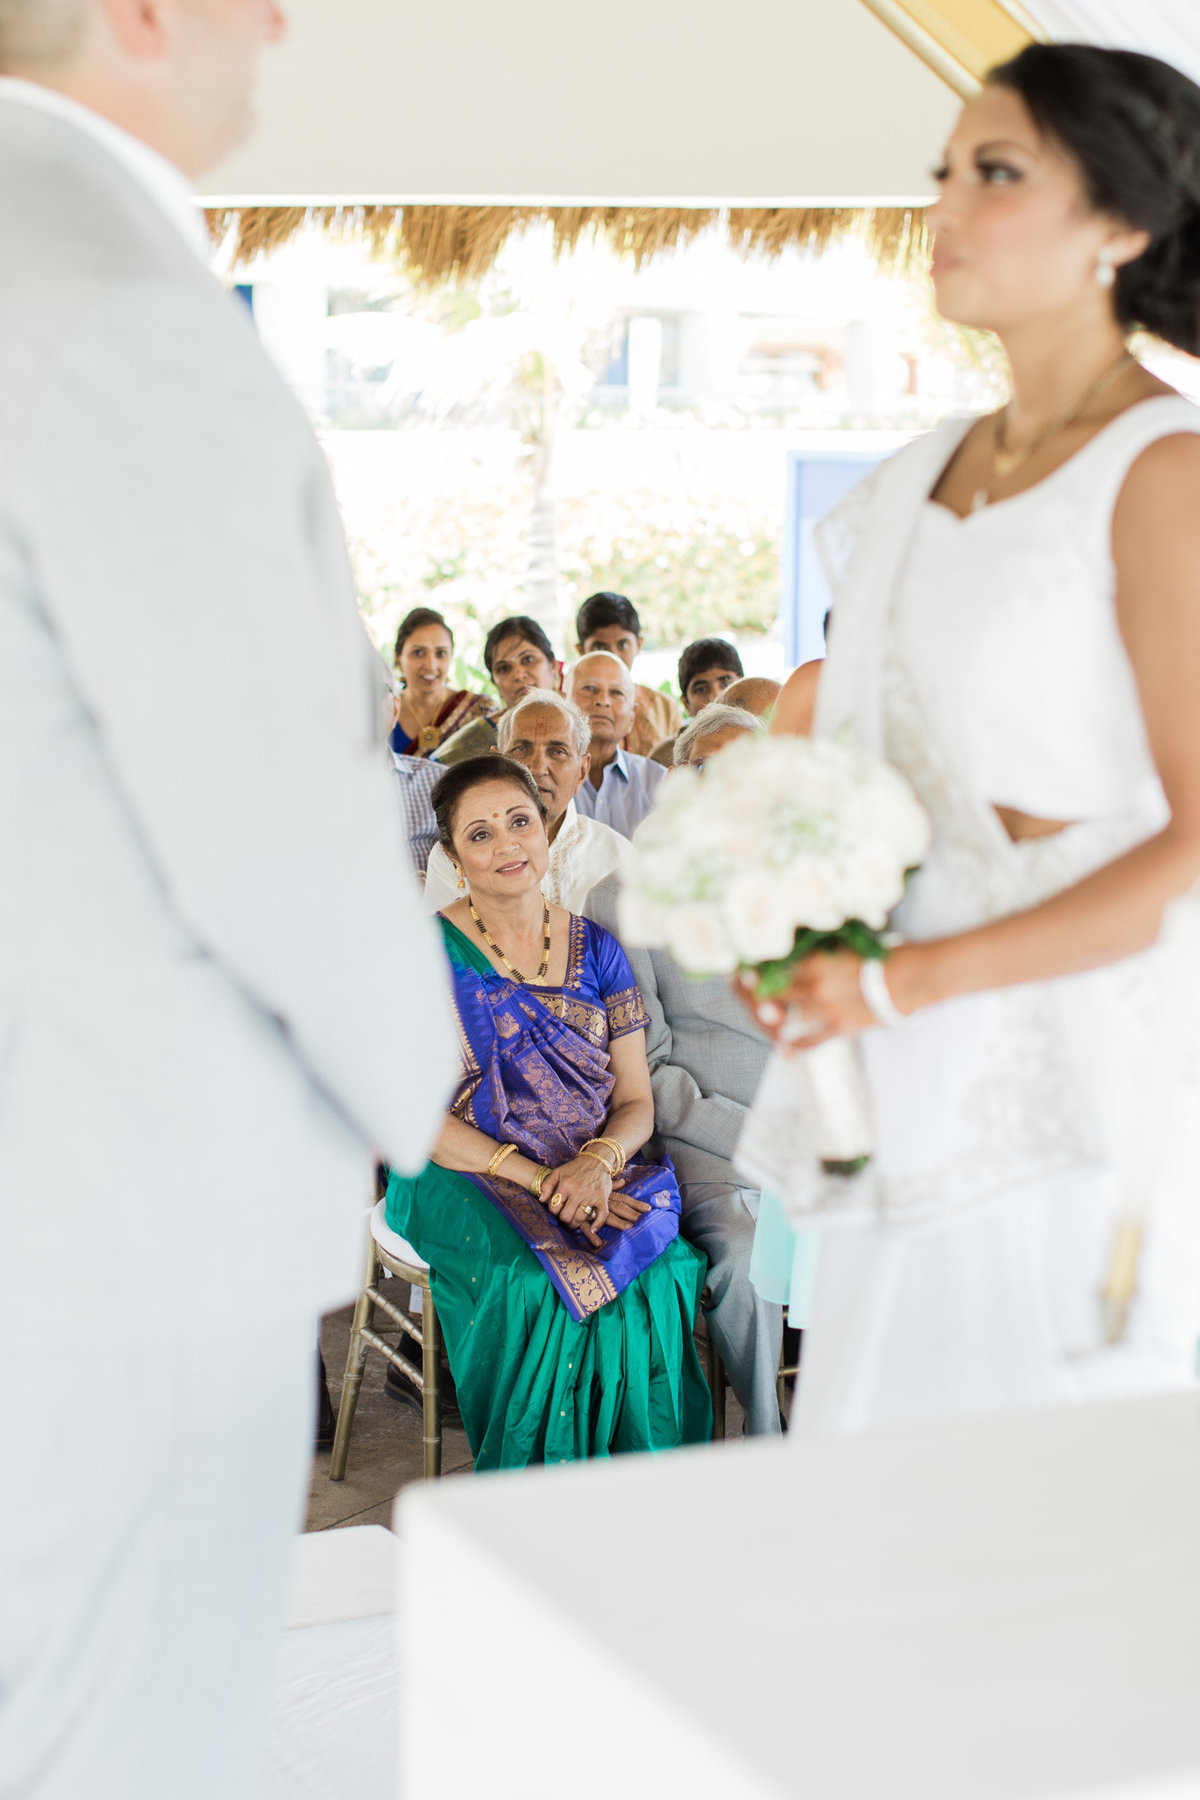 A tearful mother looks on as her daughter commits to her husband.  Photograph taken by Rebecca Cerasani